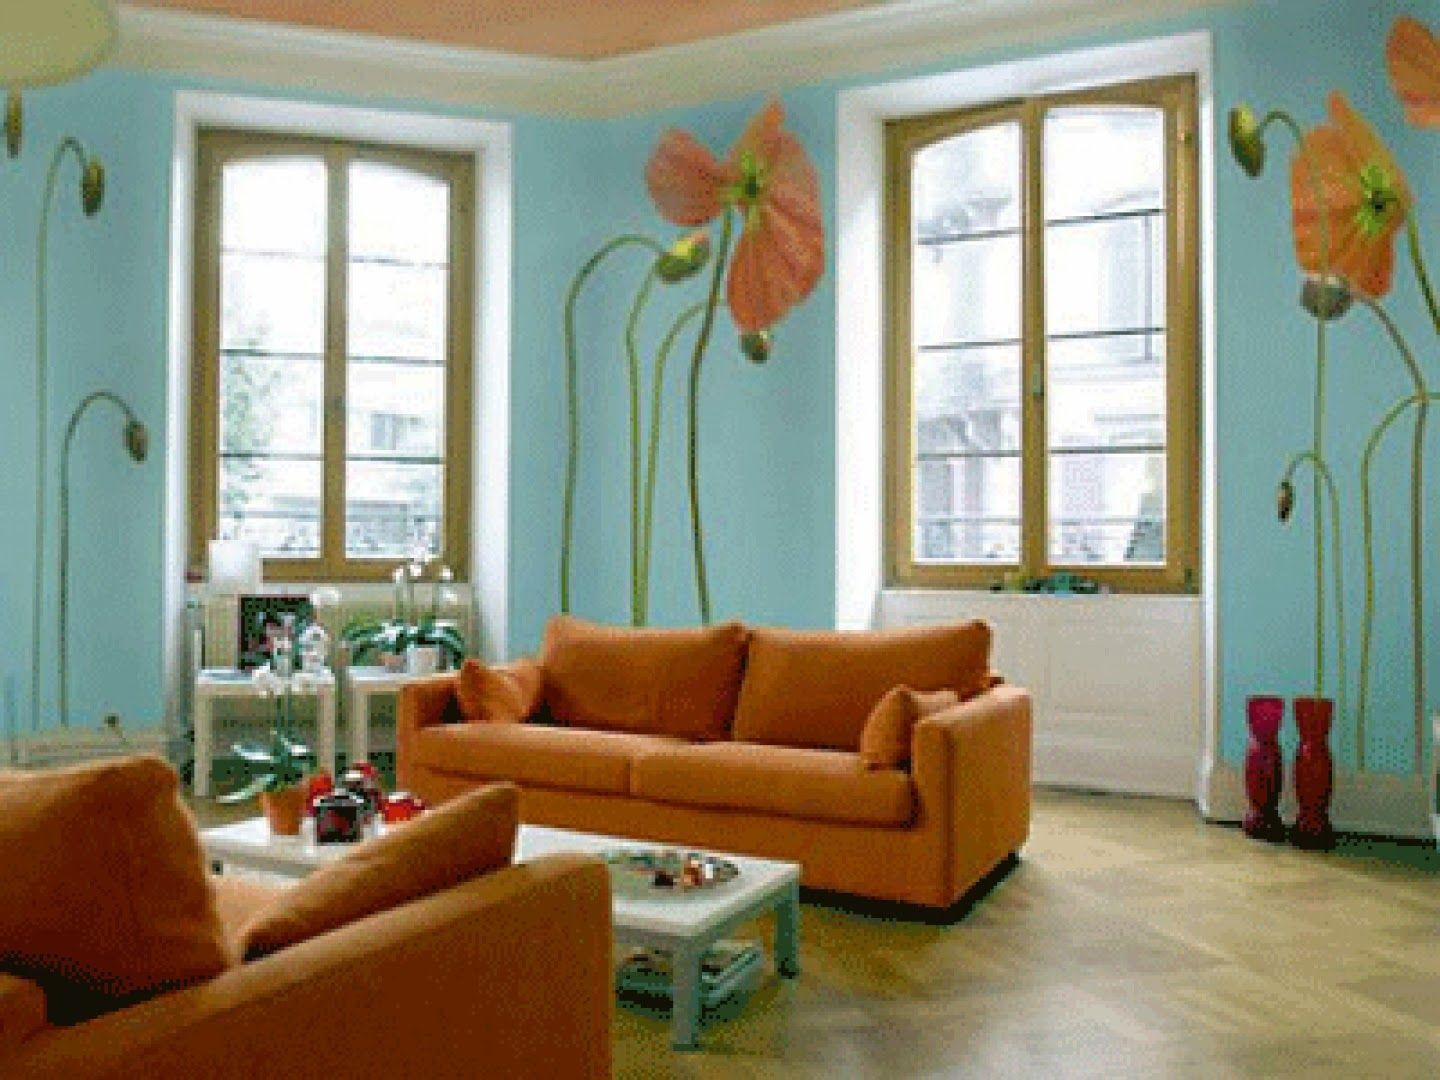 Bedroom painting ideas orange - Color Schemes For Living Room With Sofa Orange Ideas Color Schemes For Living Room With Sofa Orange Gallery Color Schemes For Living Room With Sofa Orange